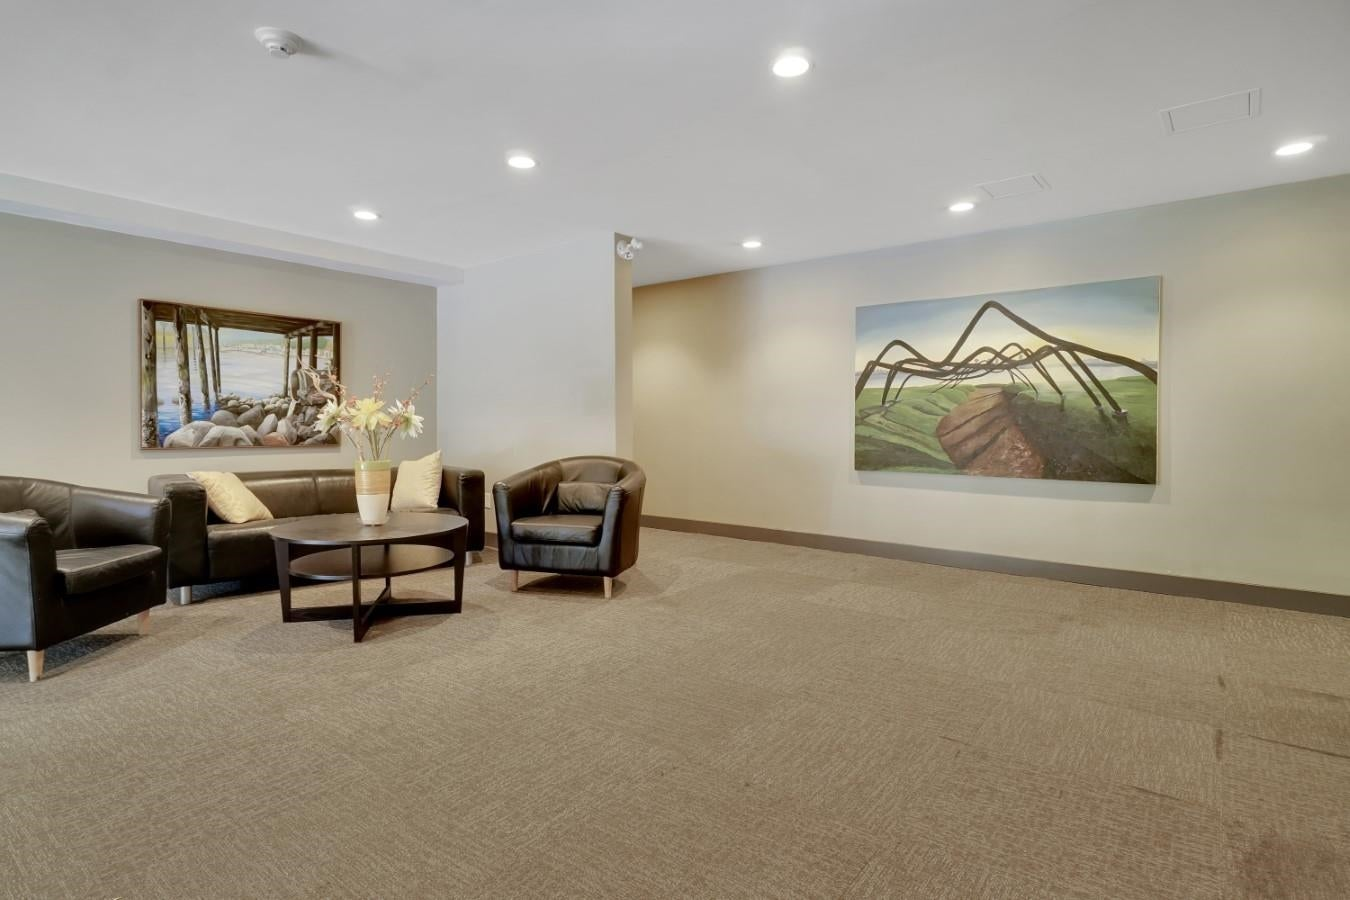 206 330 W 2ND STREET - Lower Lonsdale Apartment/Condo for sale, 2 Bedrooms (R2604160) - #29